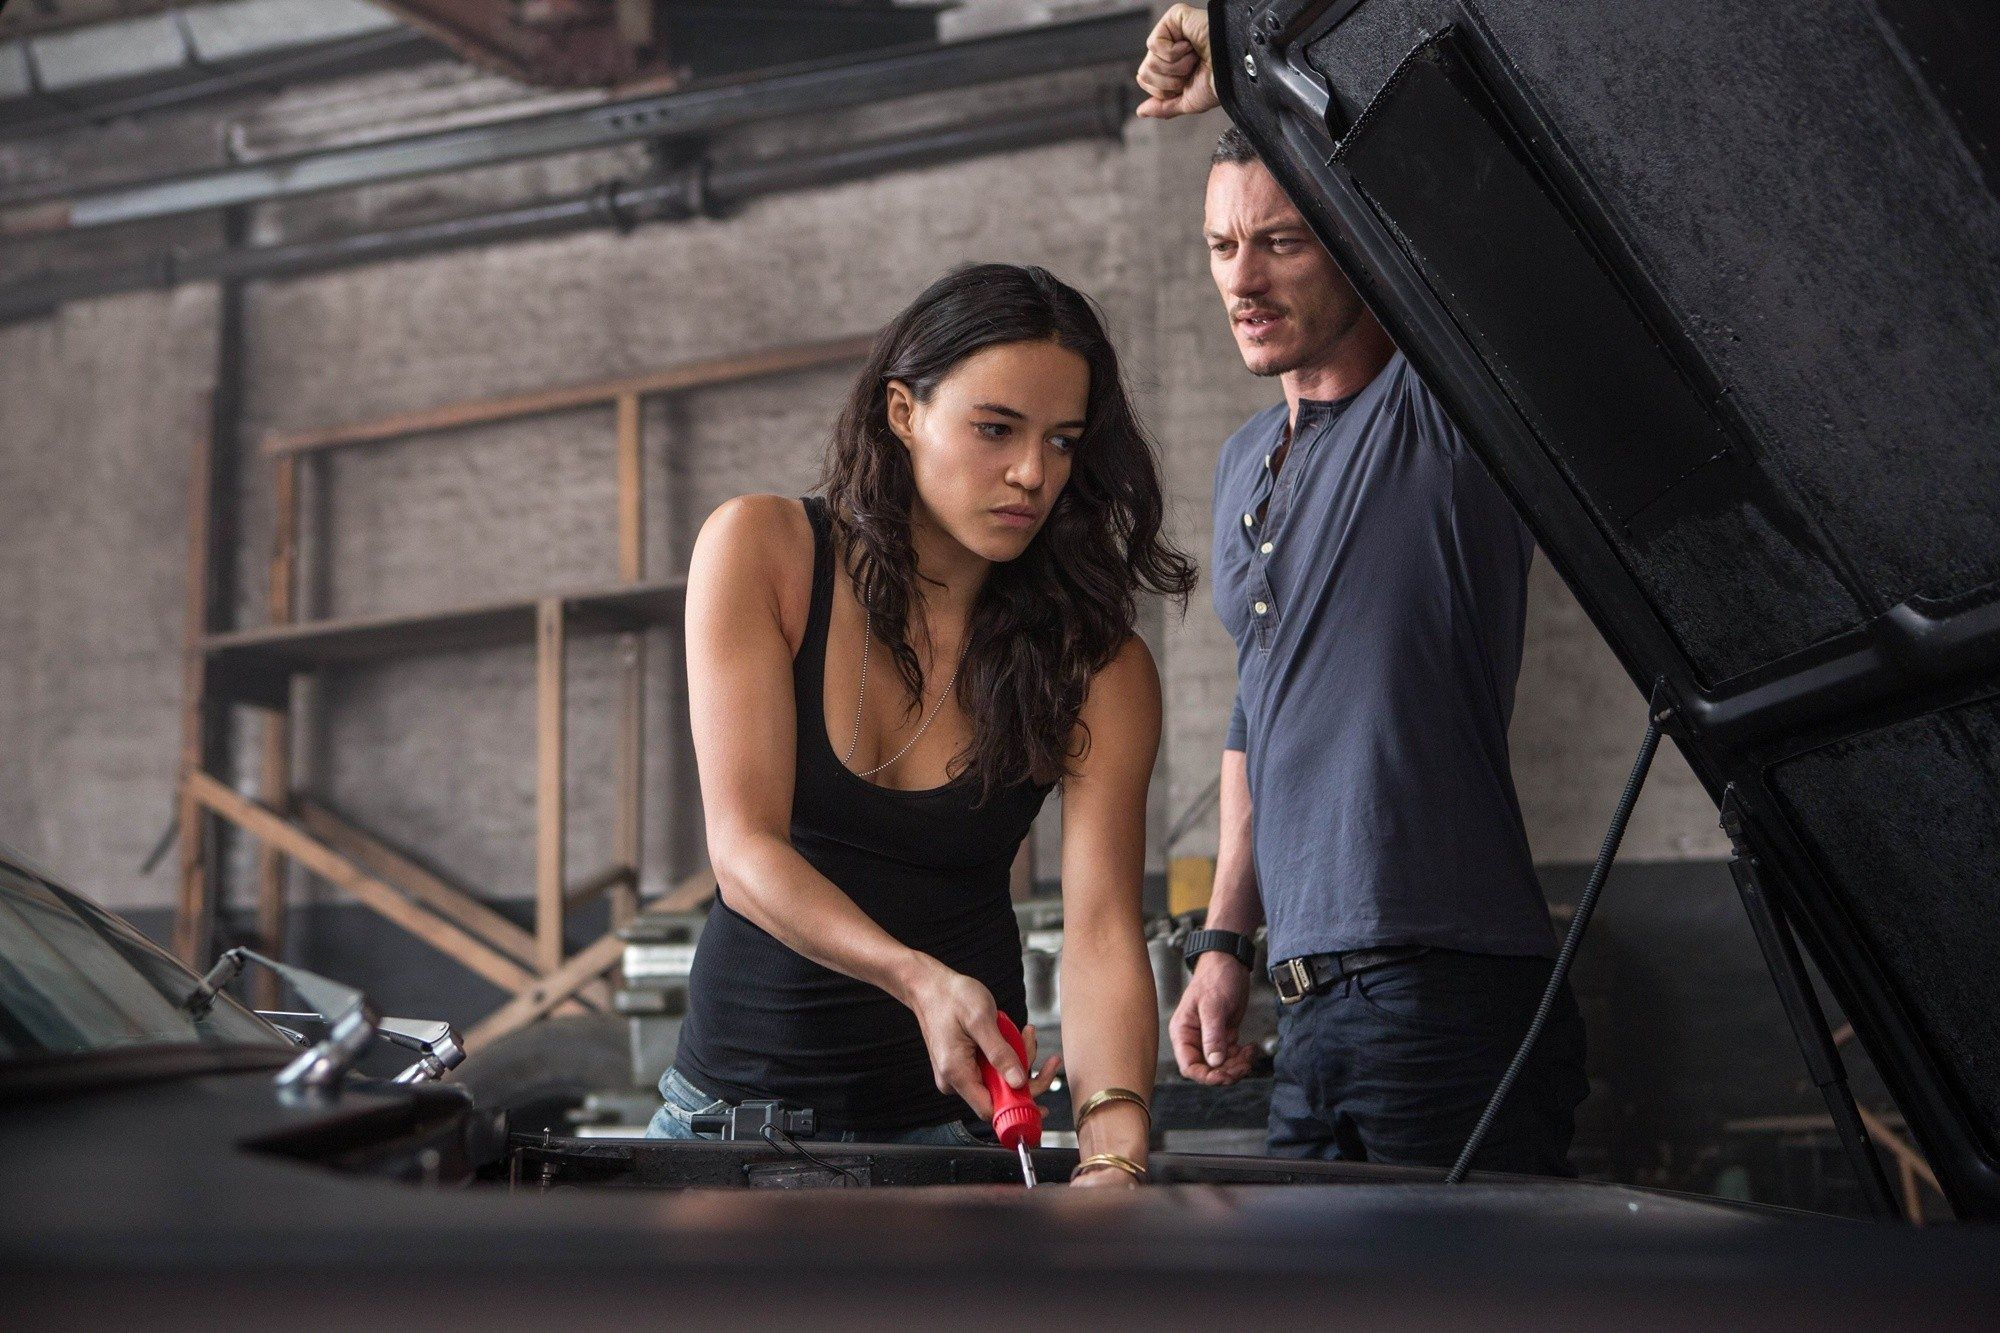 In a post-credits scene, Letty is revealed to be alive.